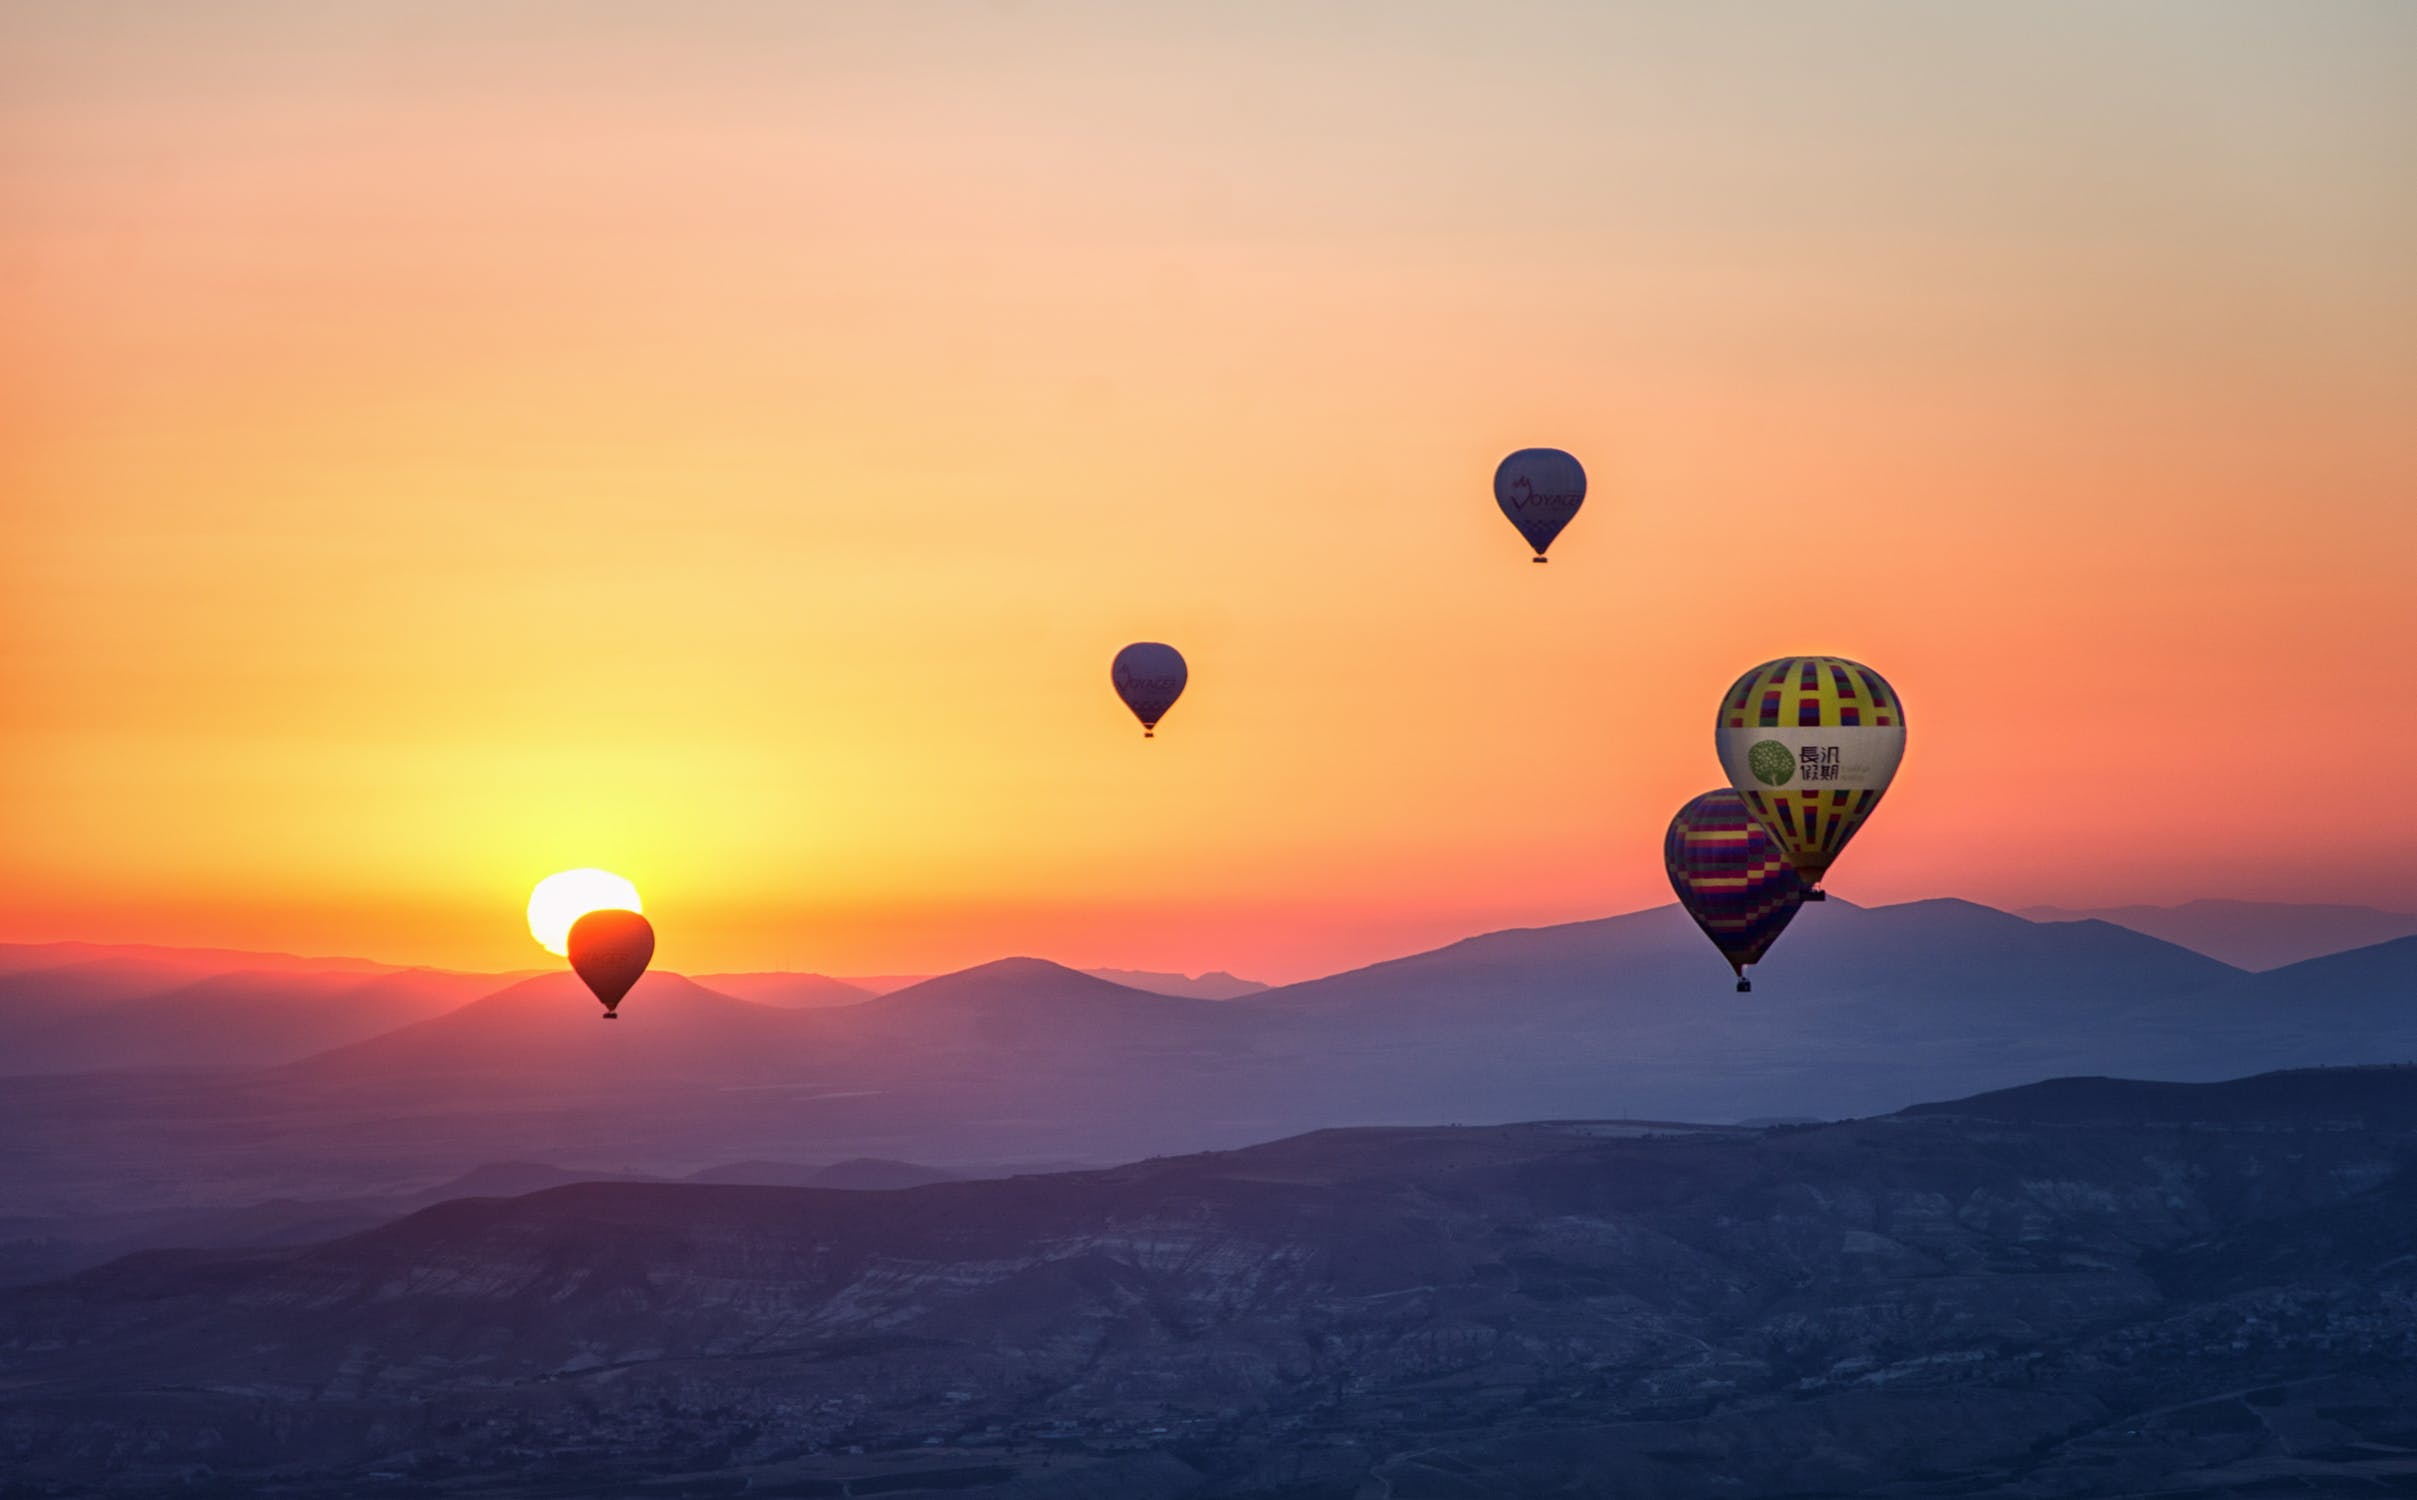 Hot air balloons in the sky during sunset.